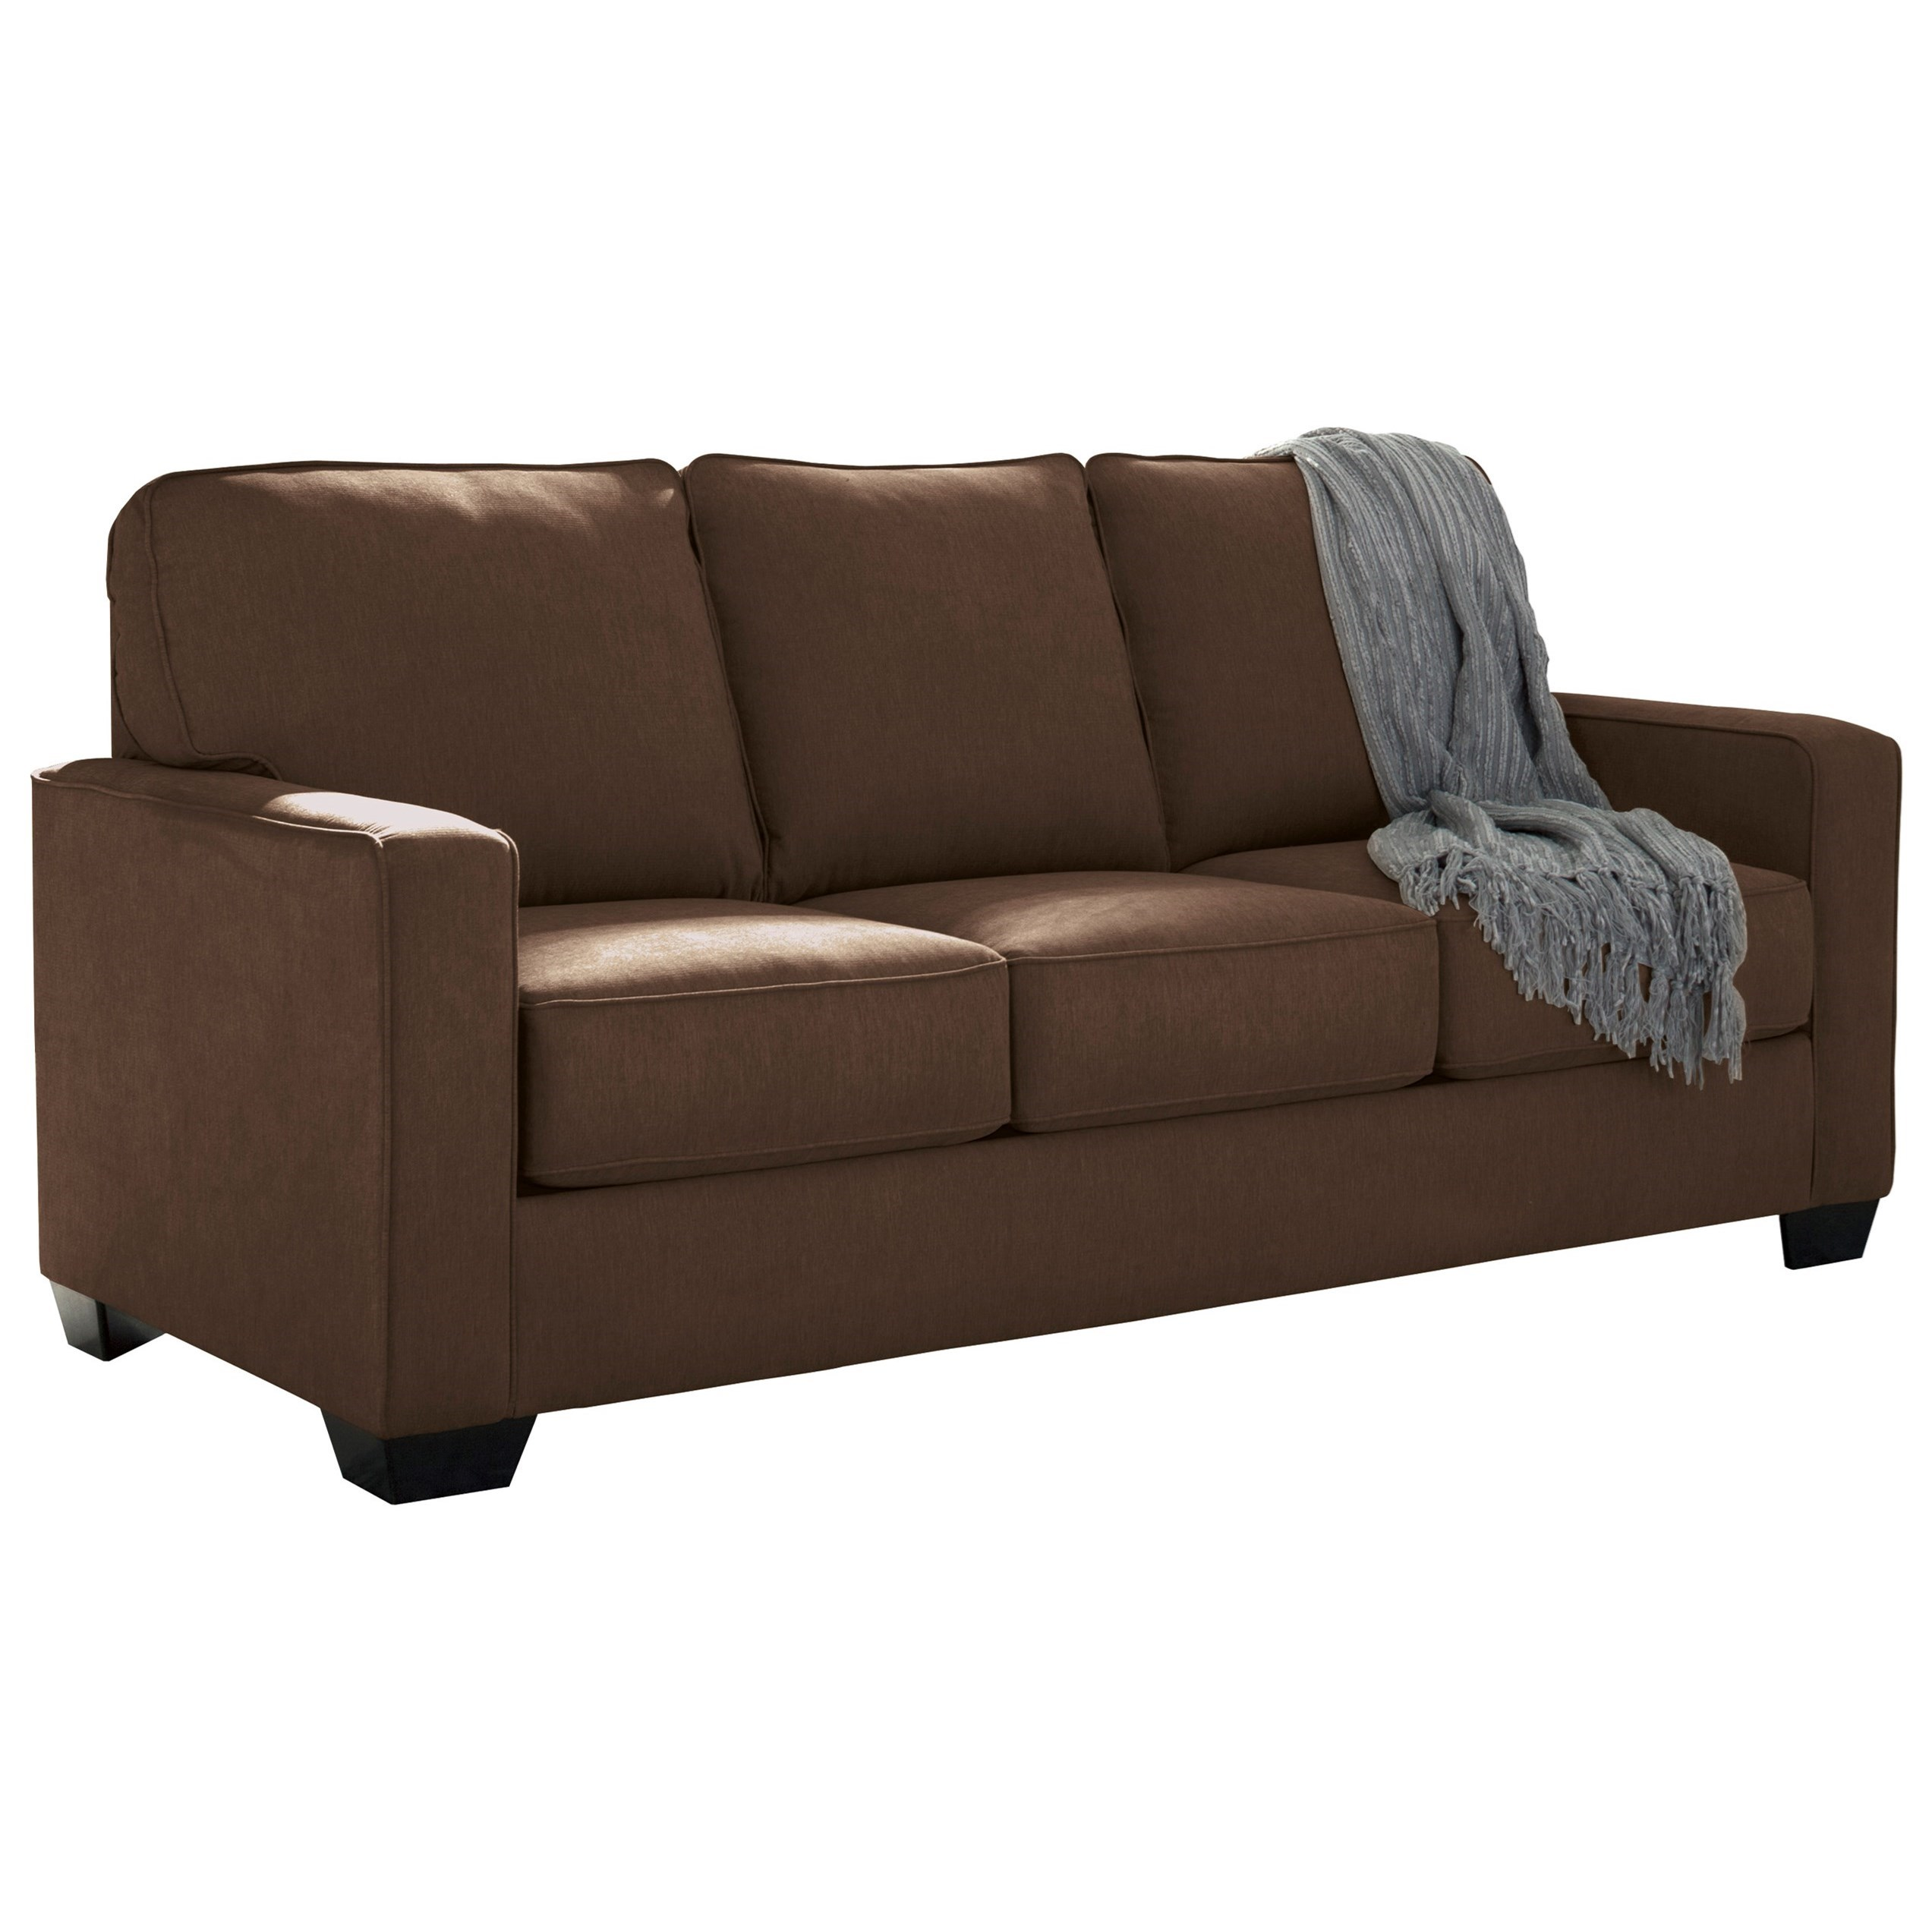 Signature Design by Ashley Zeb Full Sofa Sleeper - Item Number: 3590336